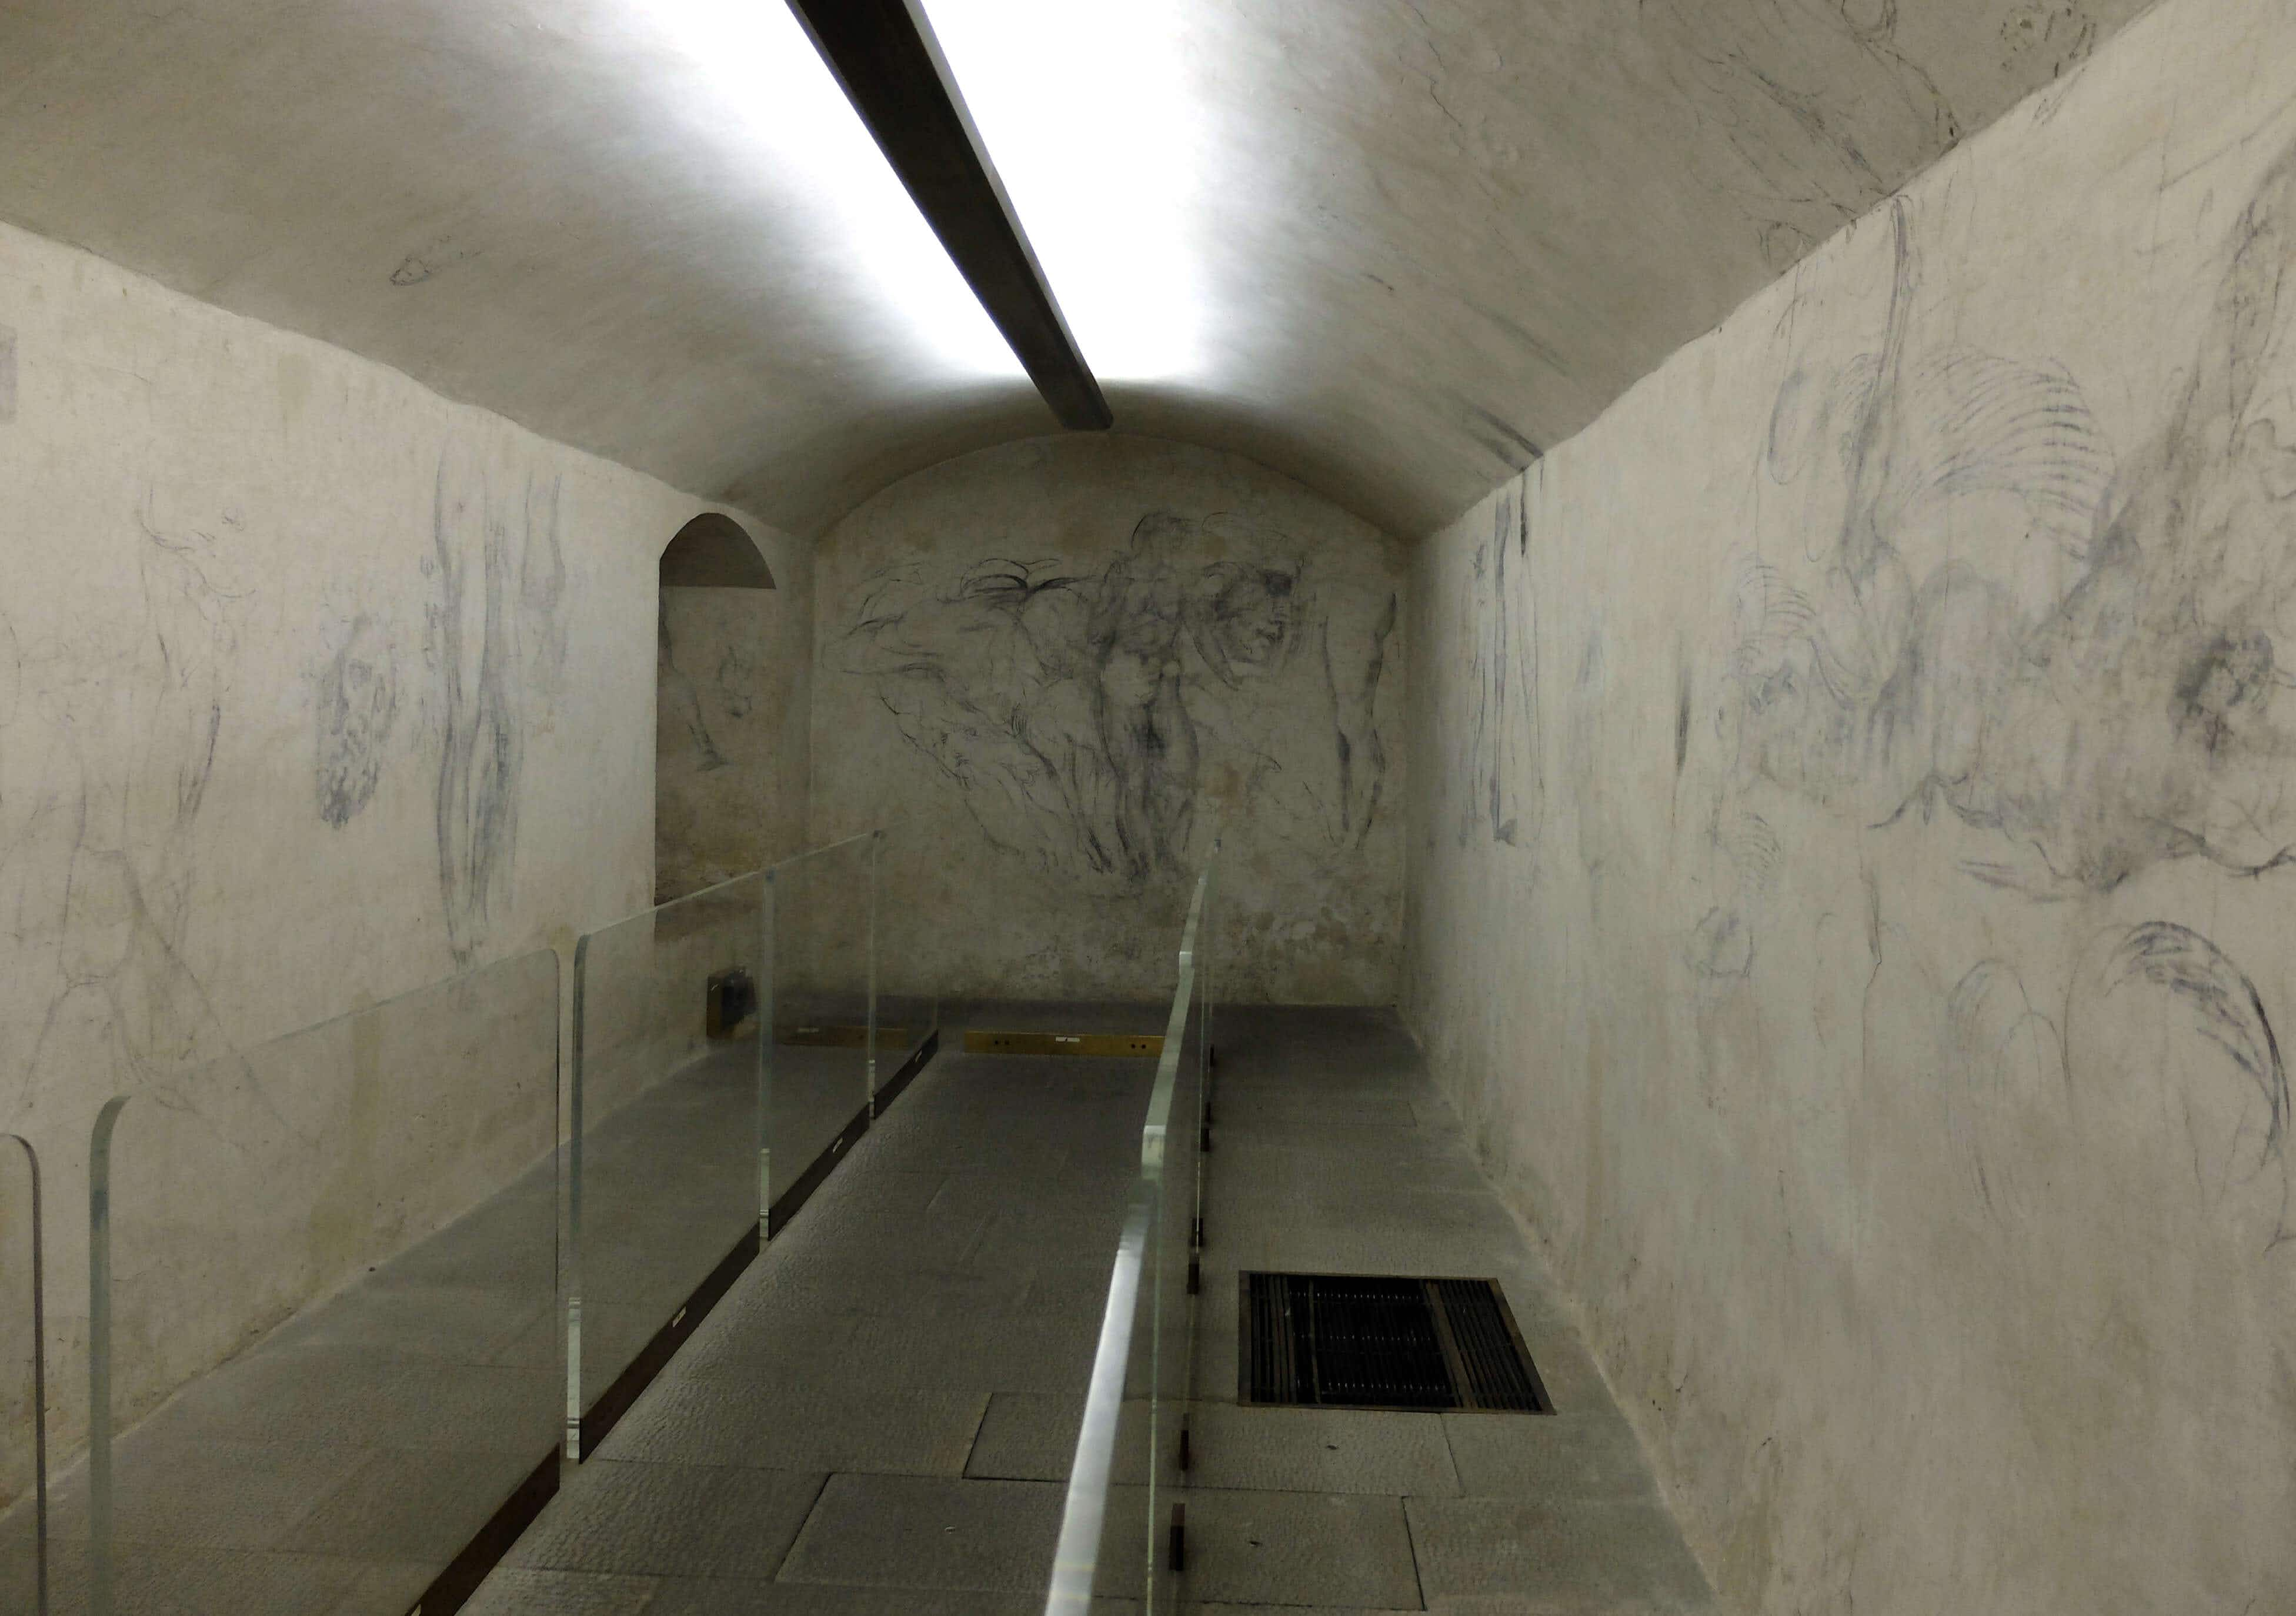 Michelangelo's 'secret chamber' set to open to the public in Florence